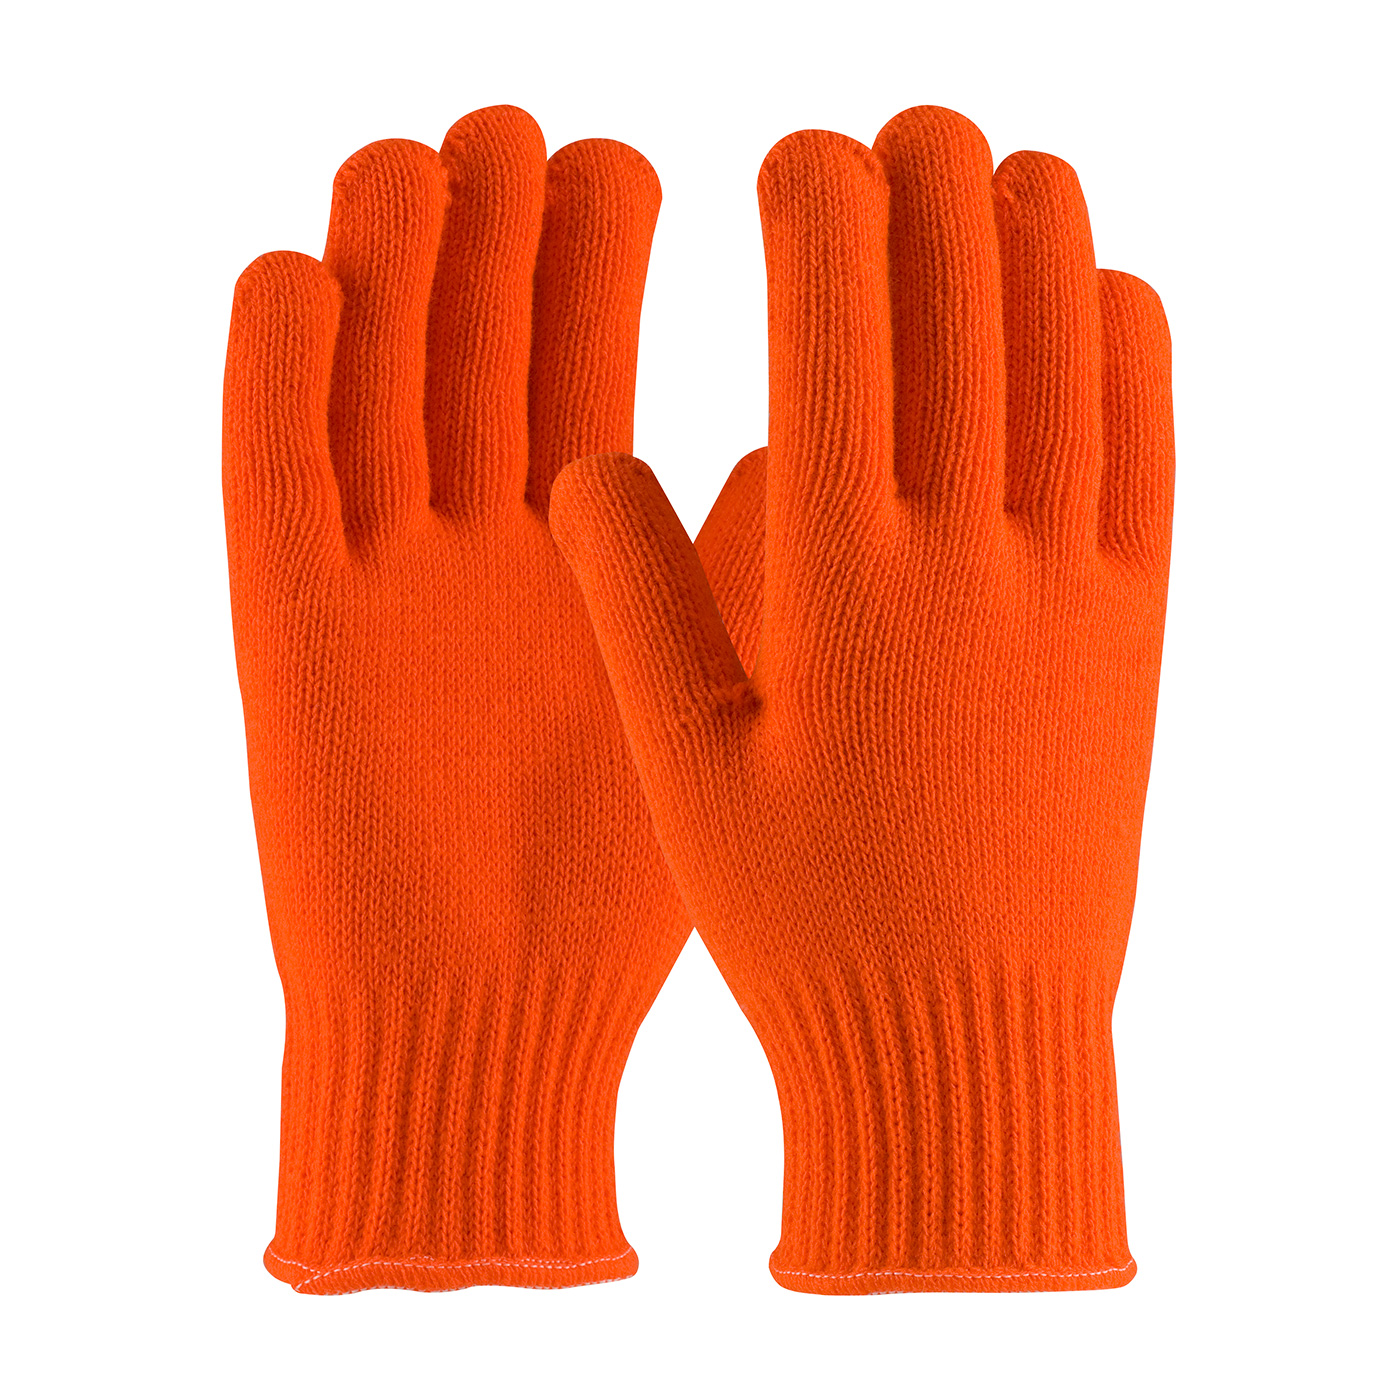 #41-013 PIP® Hi-Vis Orange Seamless Knit Acrylic Gloves